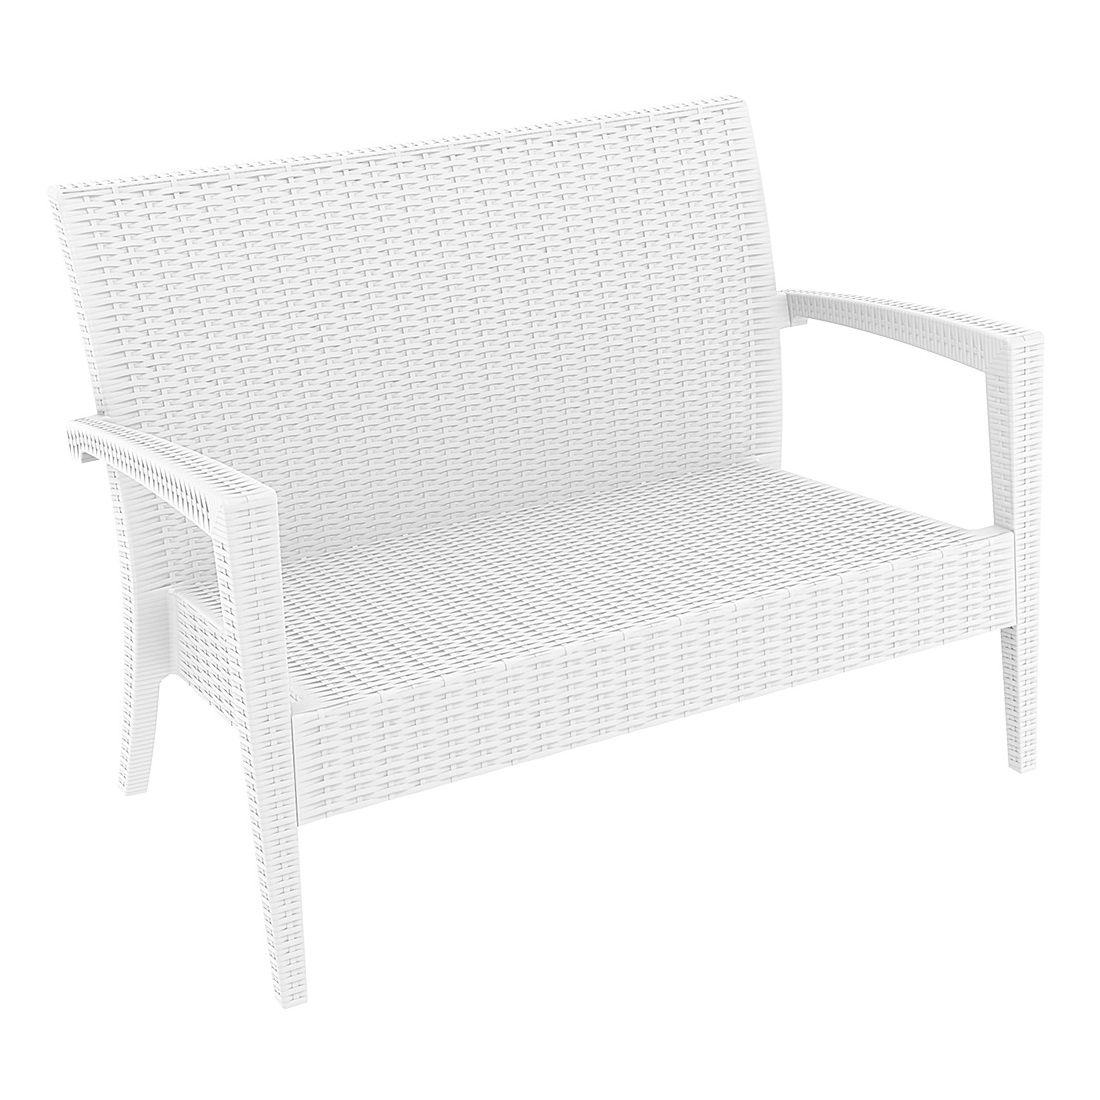 Tequila Lounge Sofa White